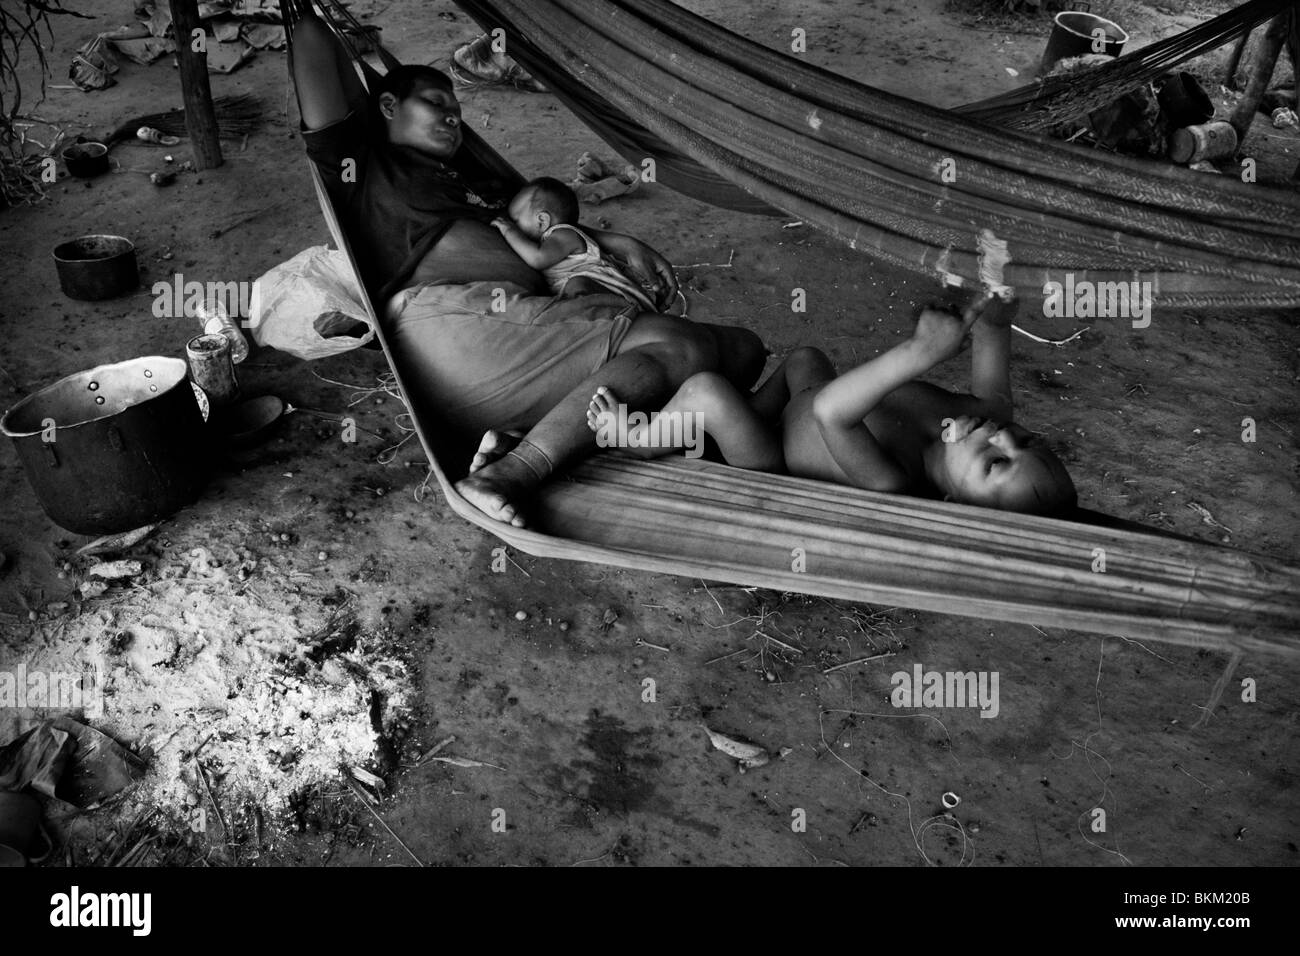 A Nukak woman with her children lies in a hammock in a refugee encampment close to San Jose del Guaviare, Colombia. - Stock Image